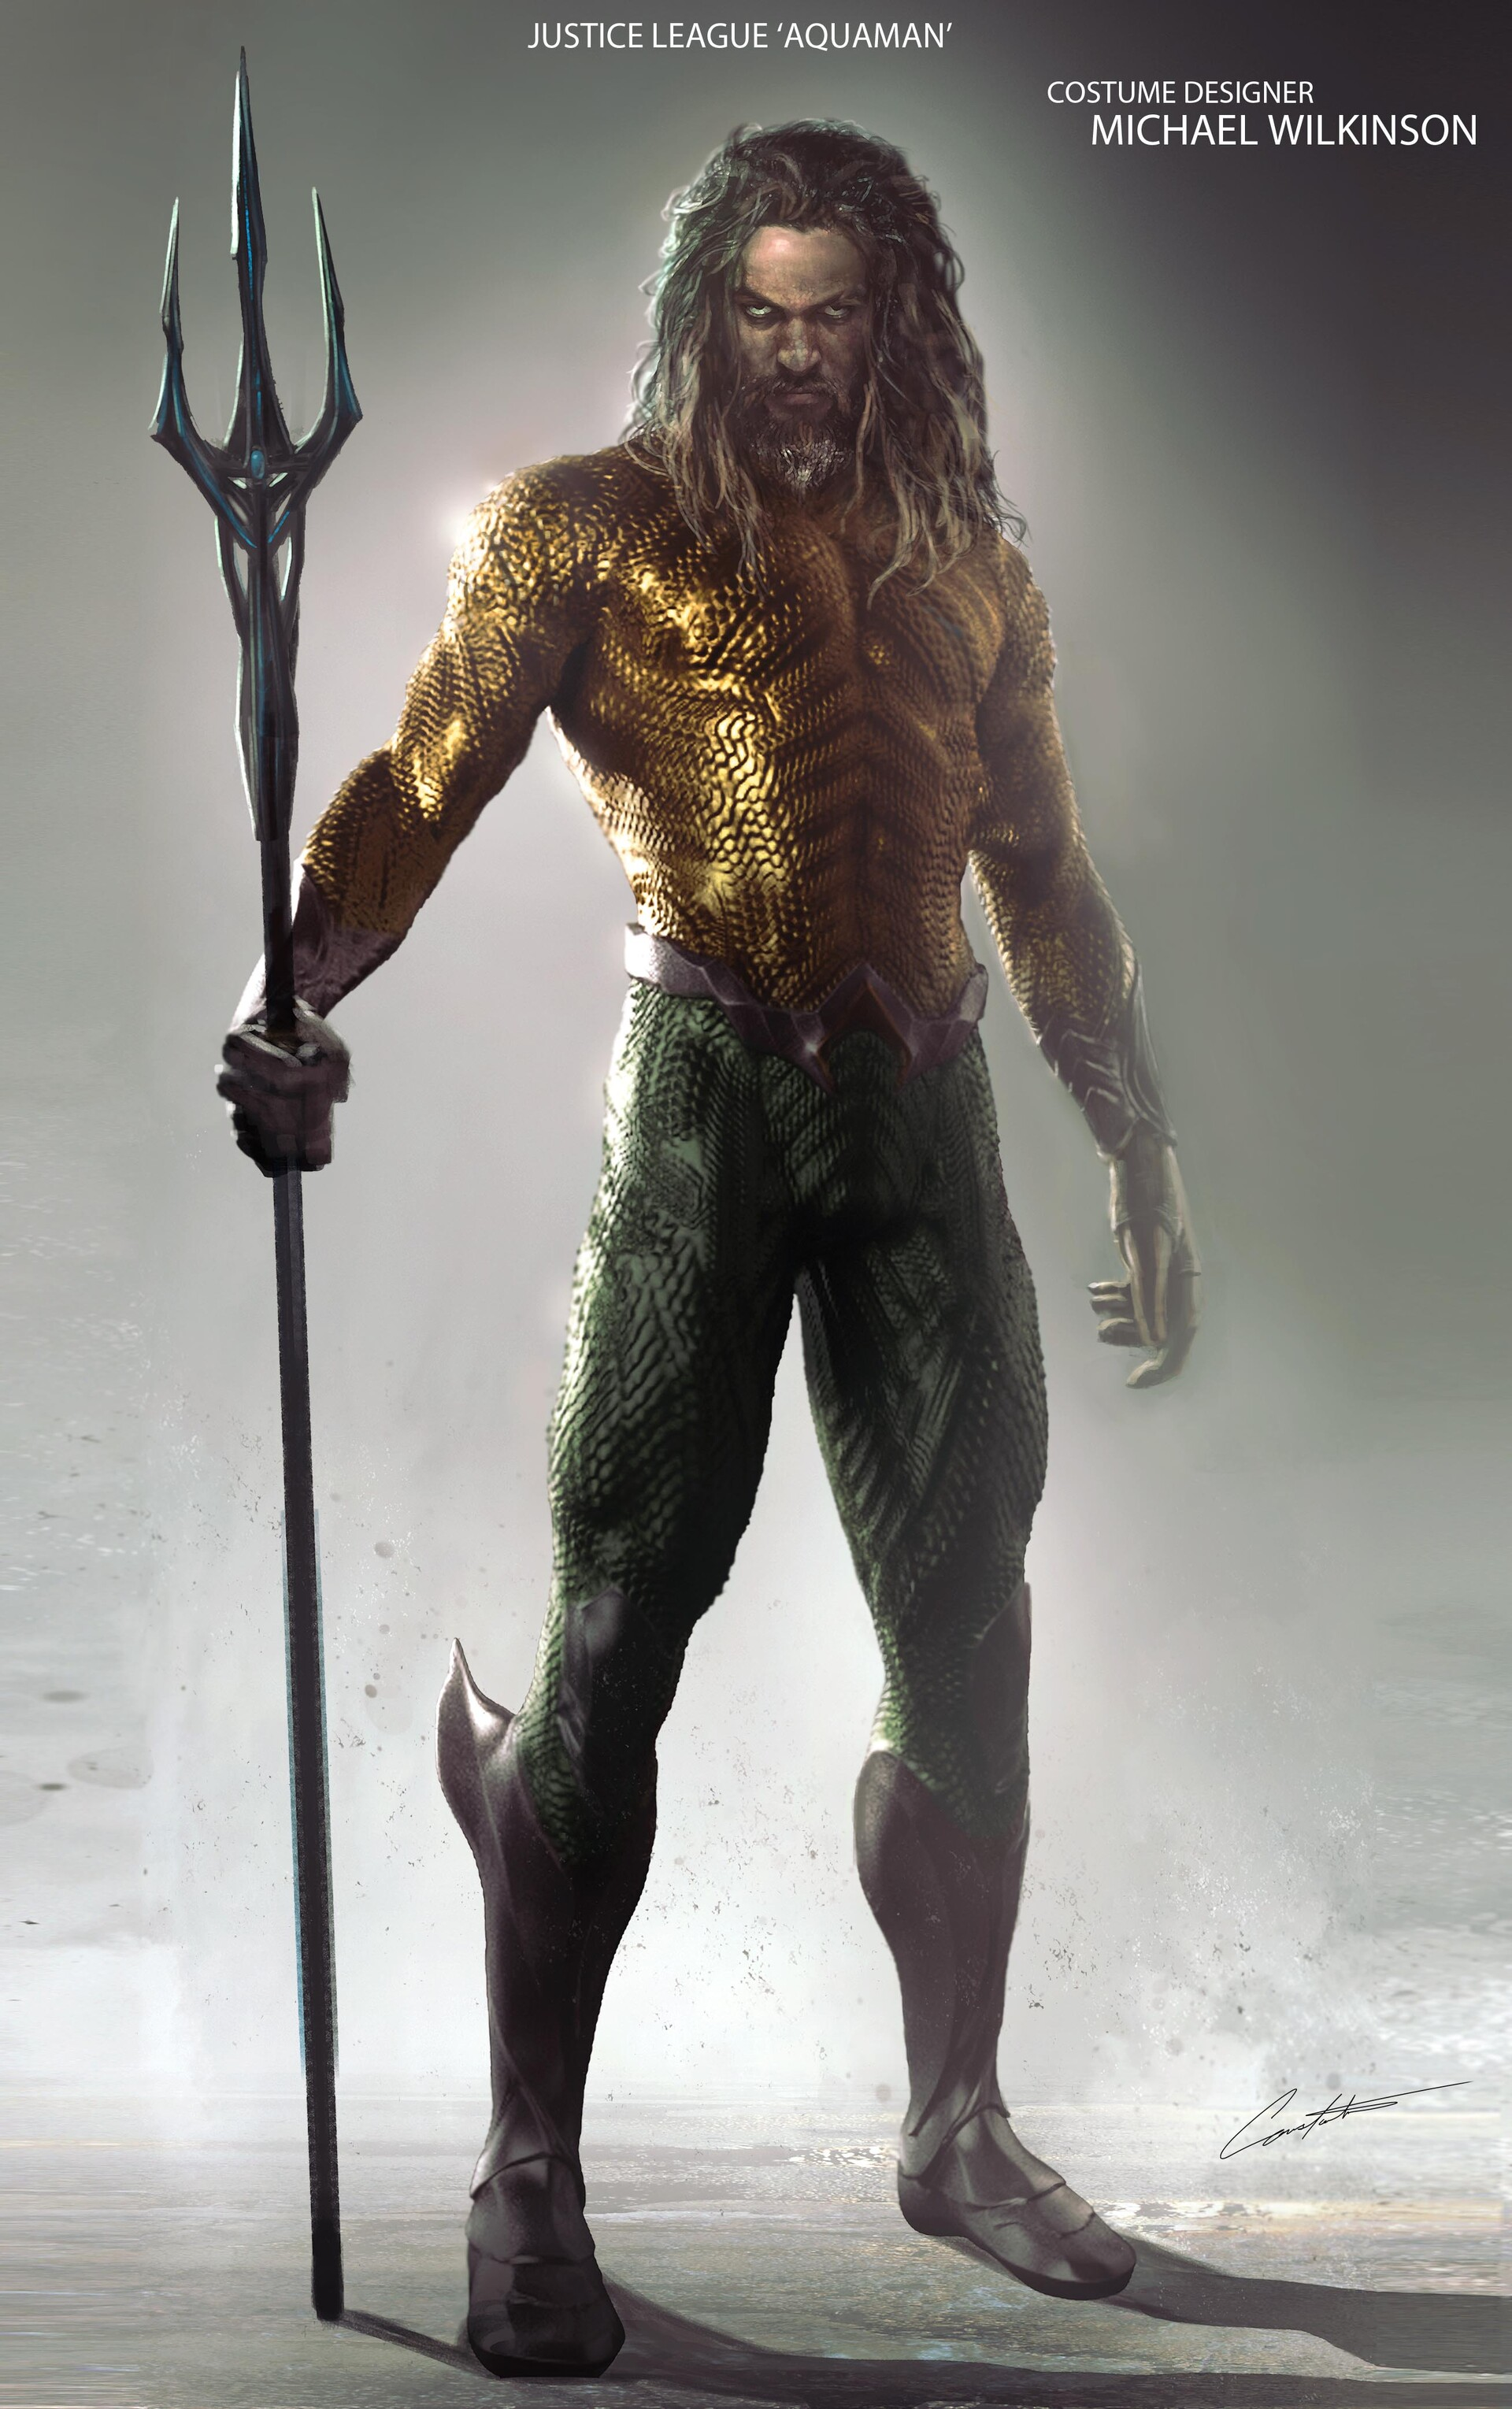 Justice League Aquaman concept art